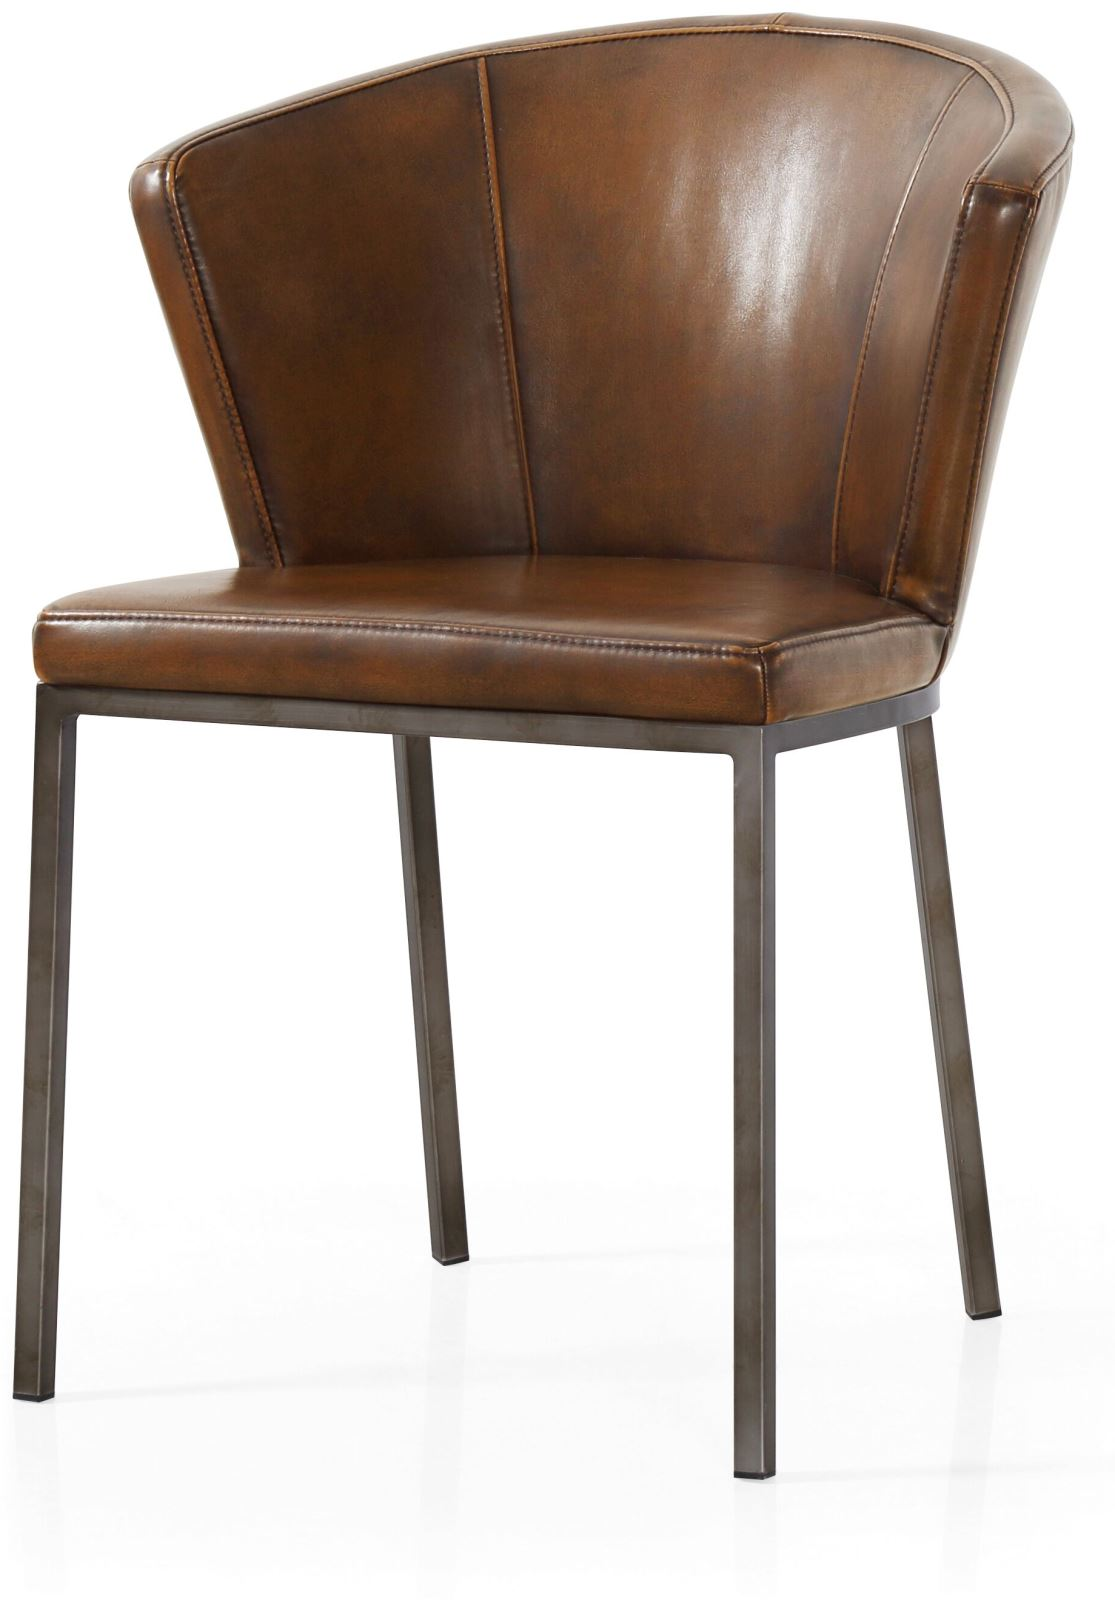 Classic Furniture Industrial Dining Chair